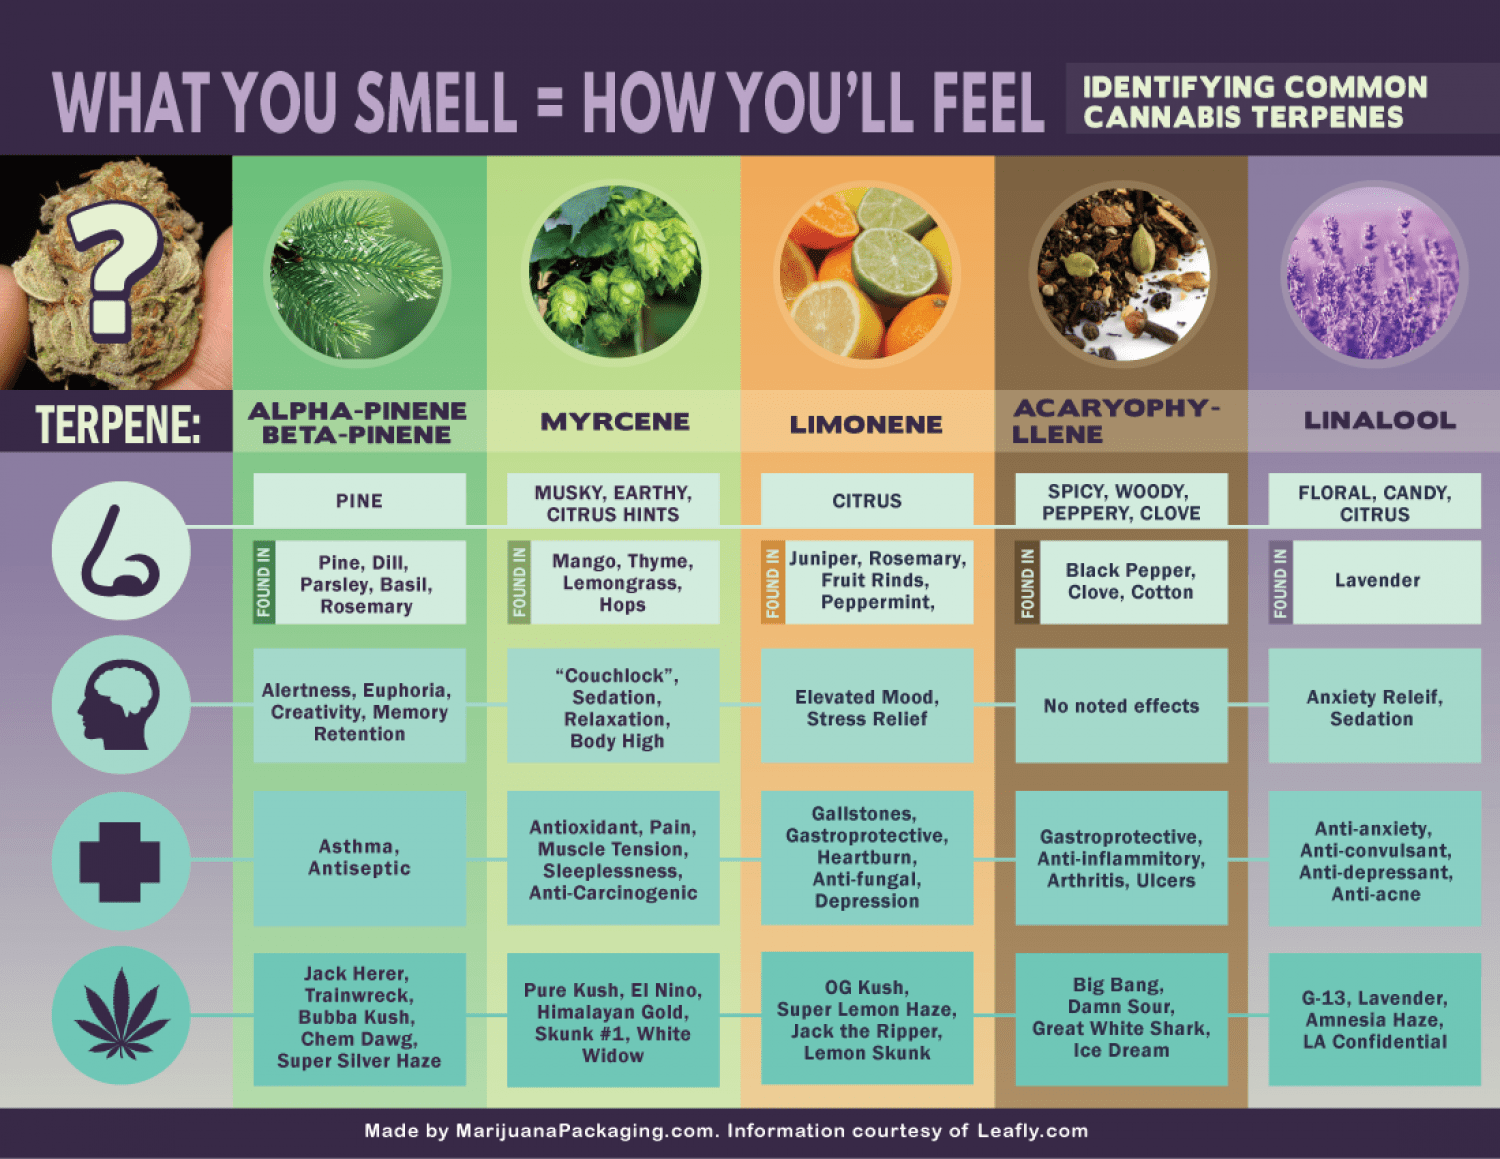 Terpene Smells And What They Mean Infographic